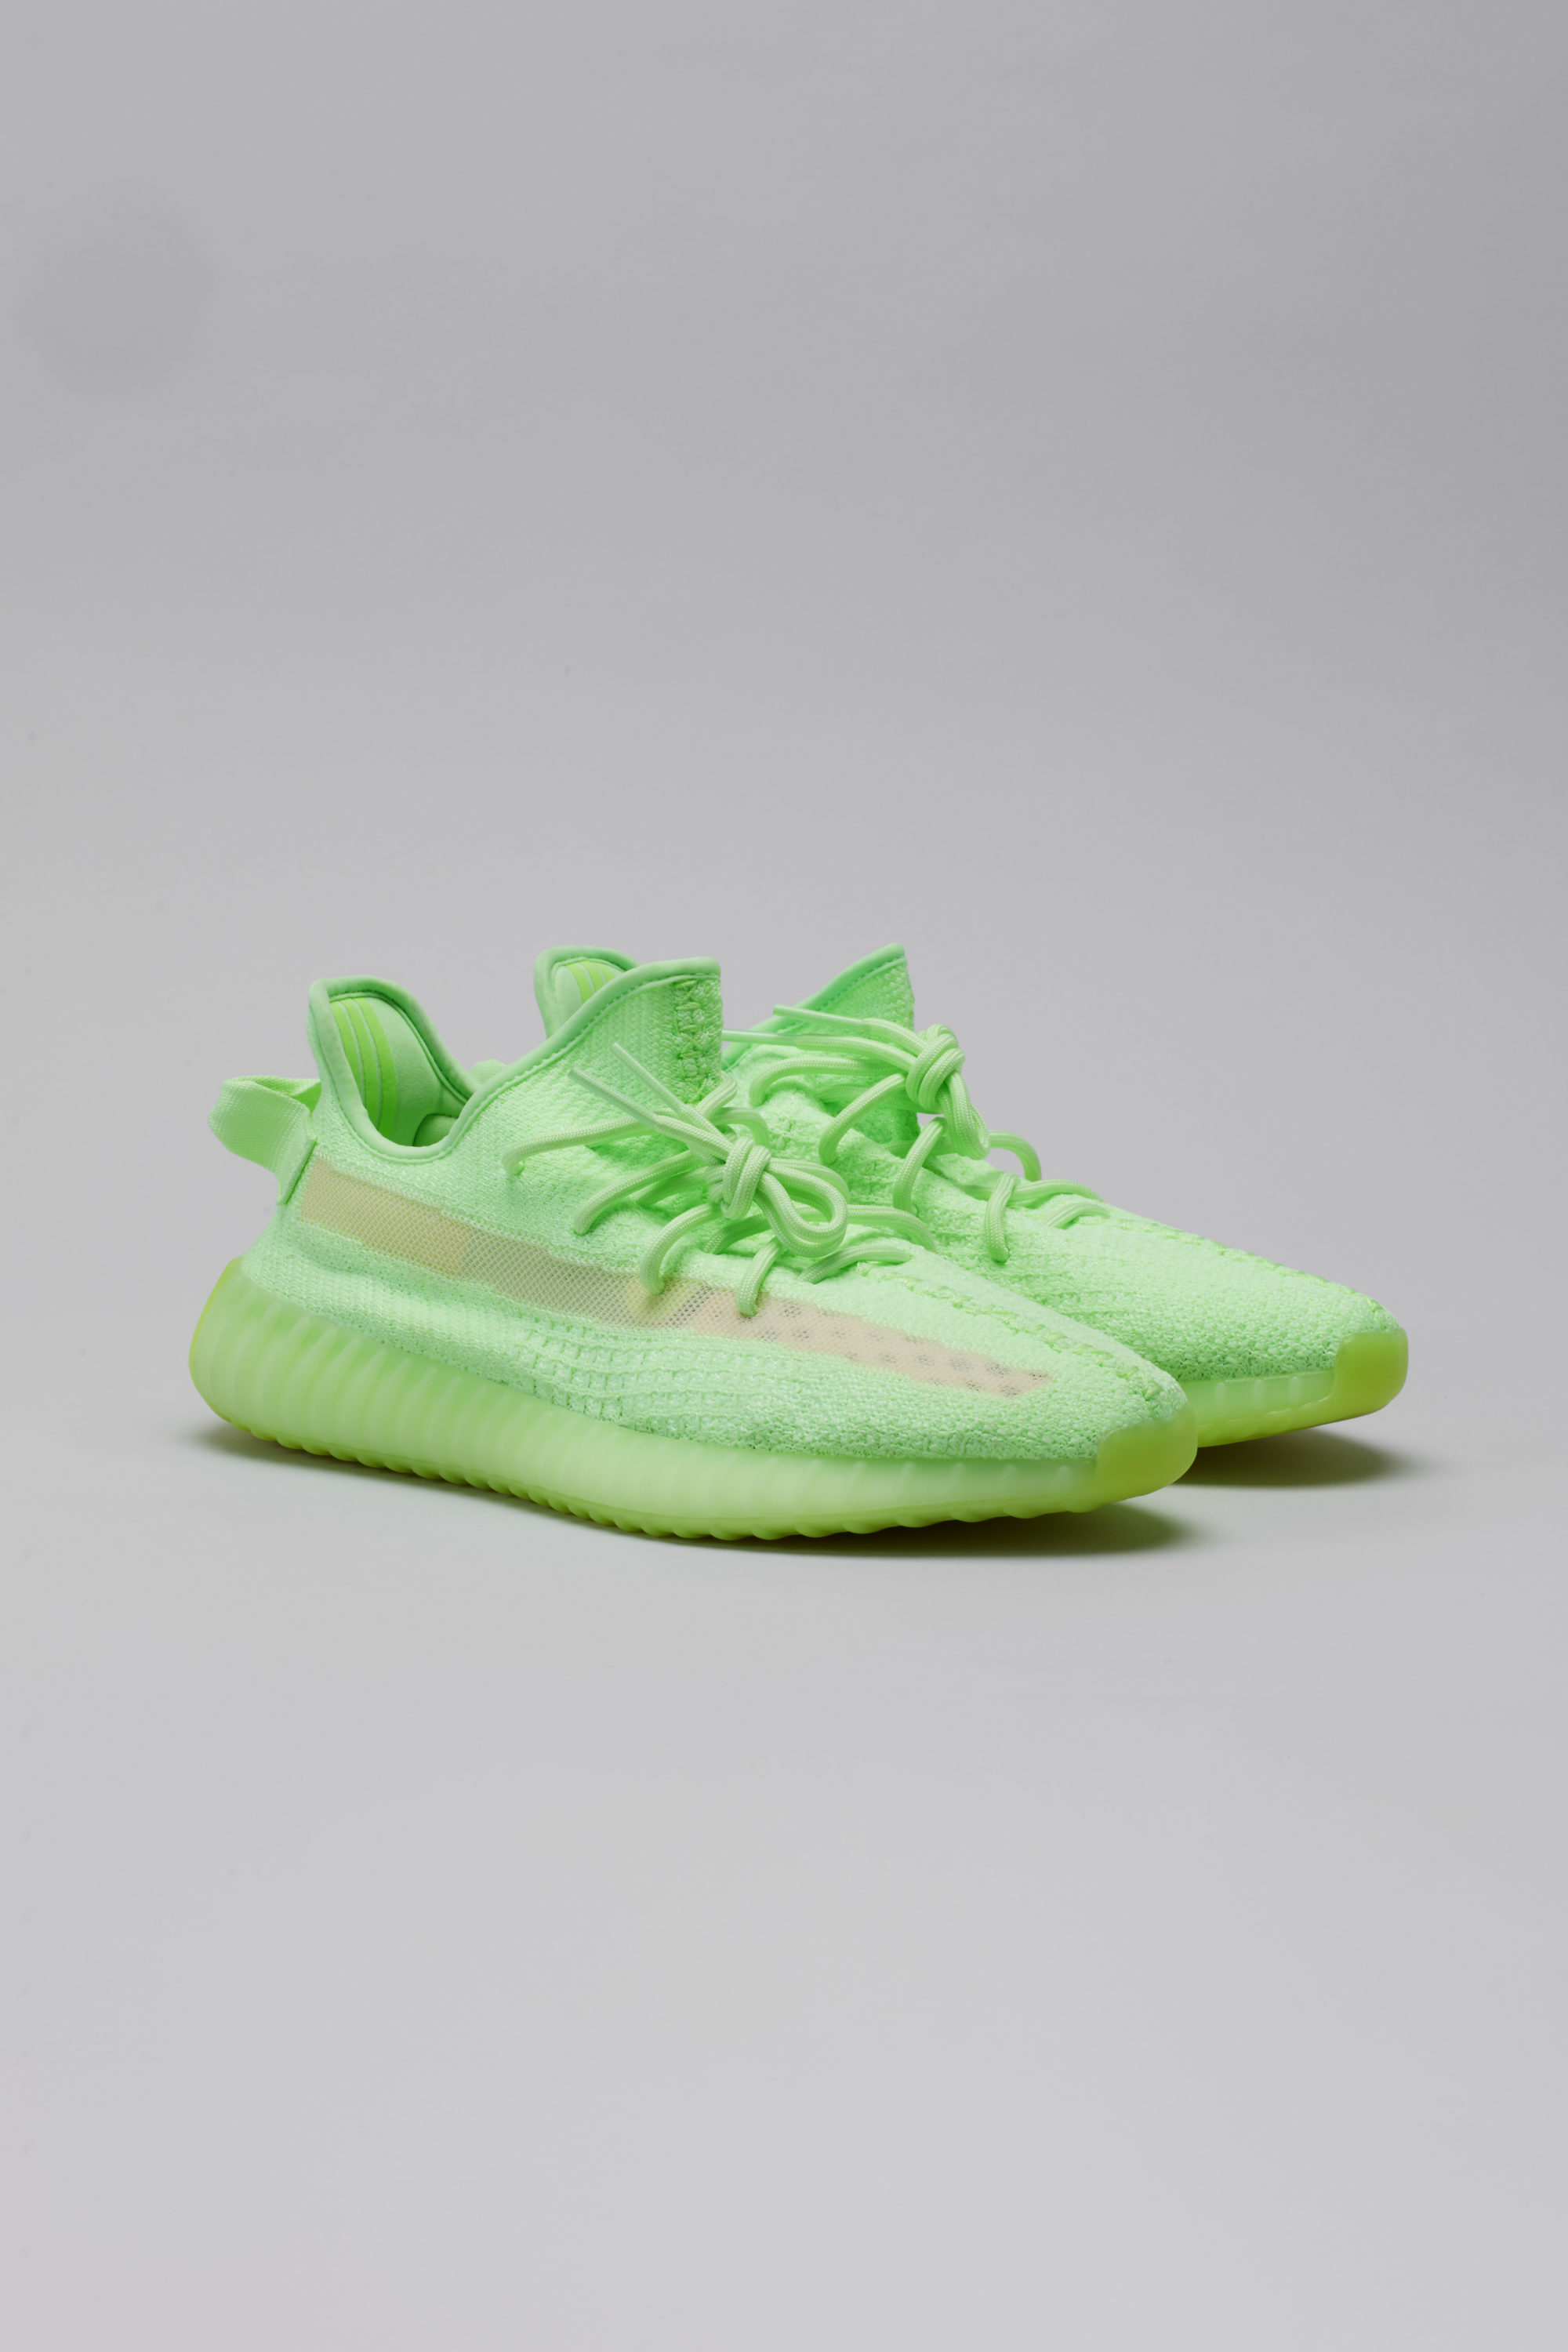 Yeezy Boost 350 Glow - By The Numbers